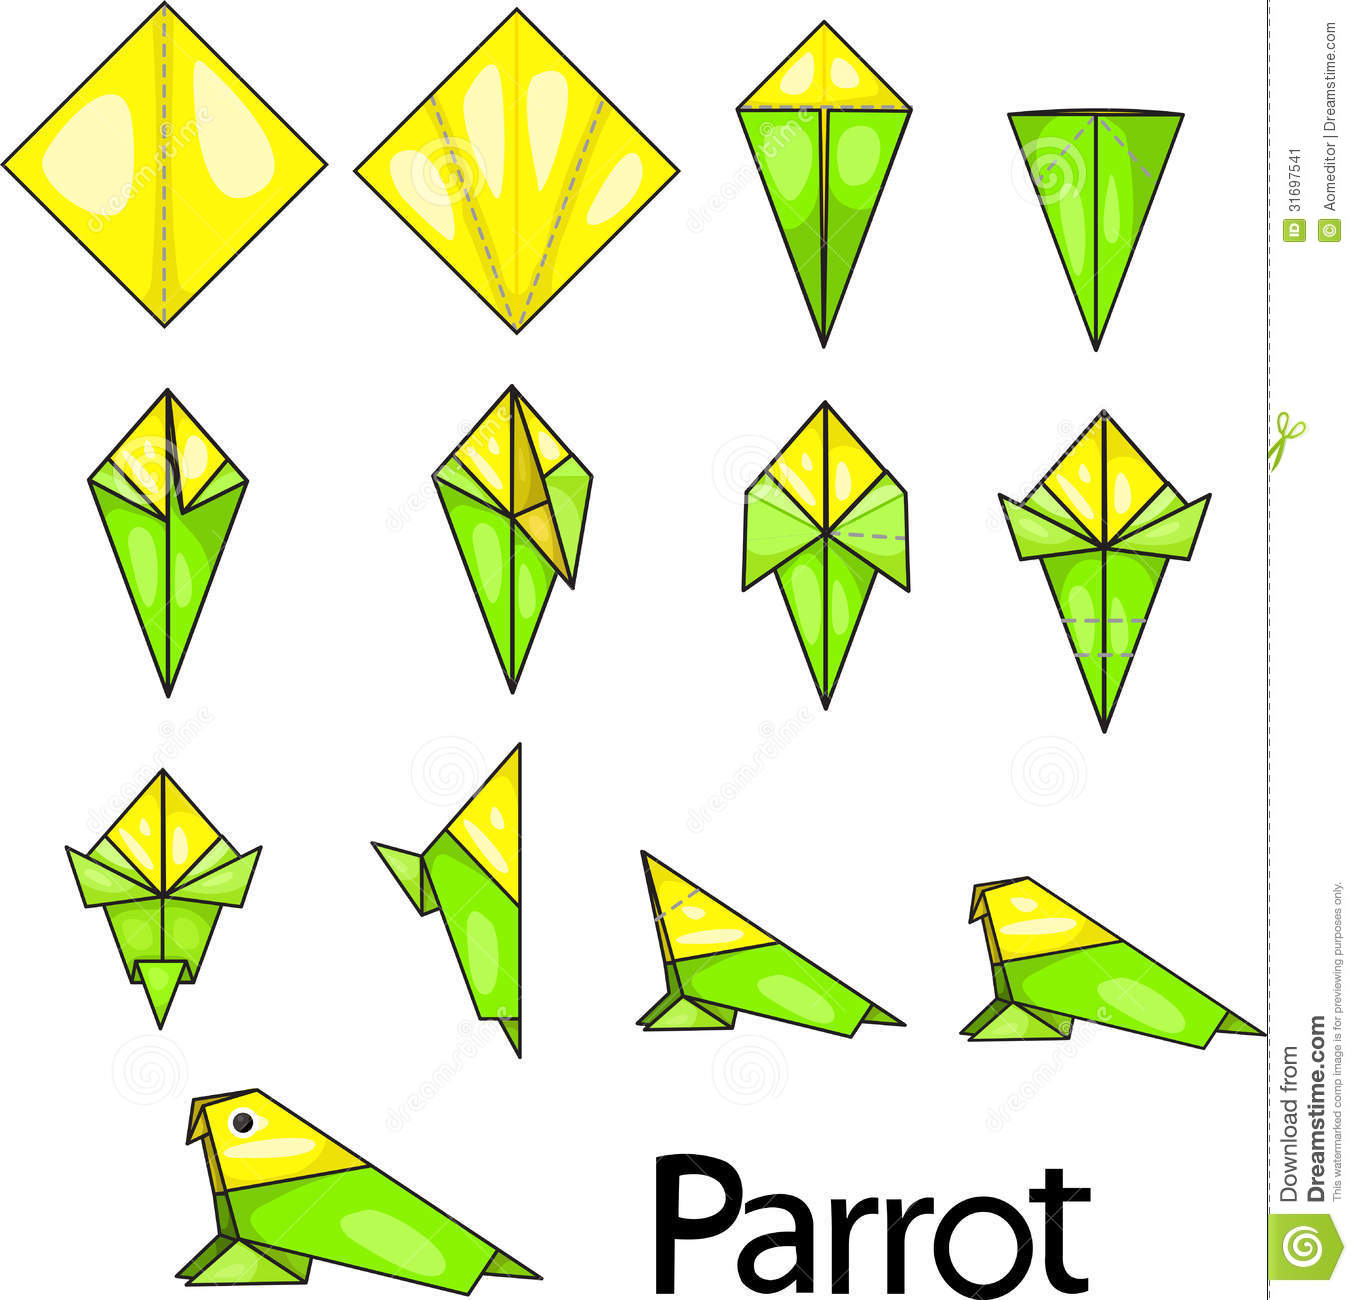 origami parrot step by step - DriverLayer Search Engine